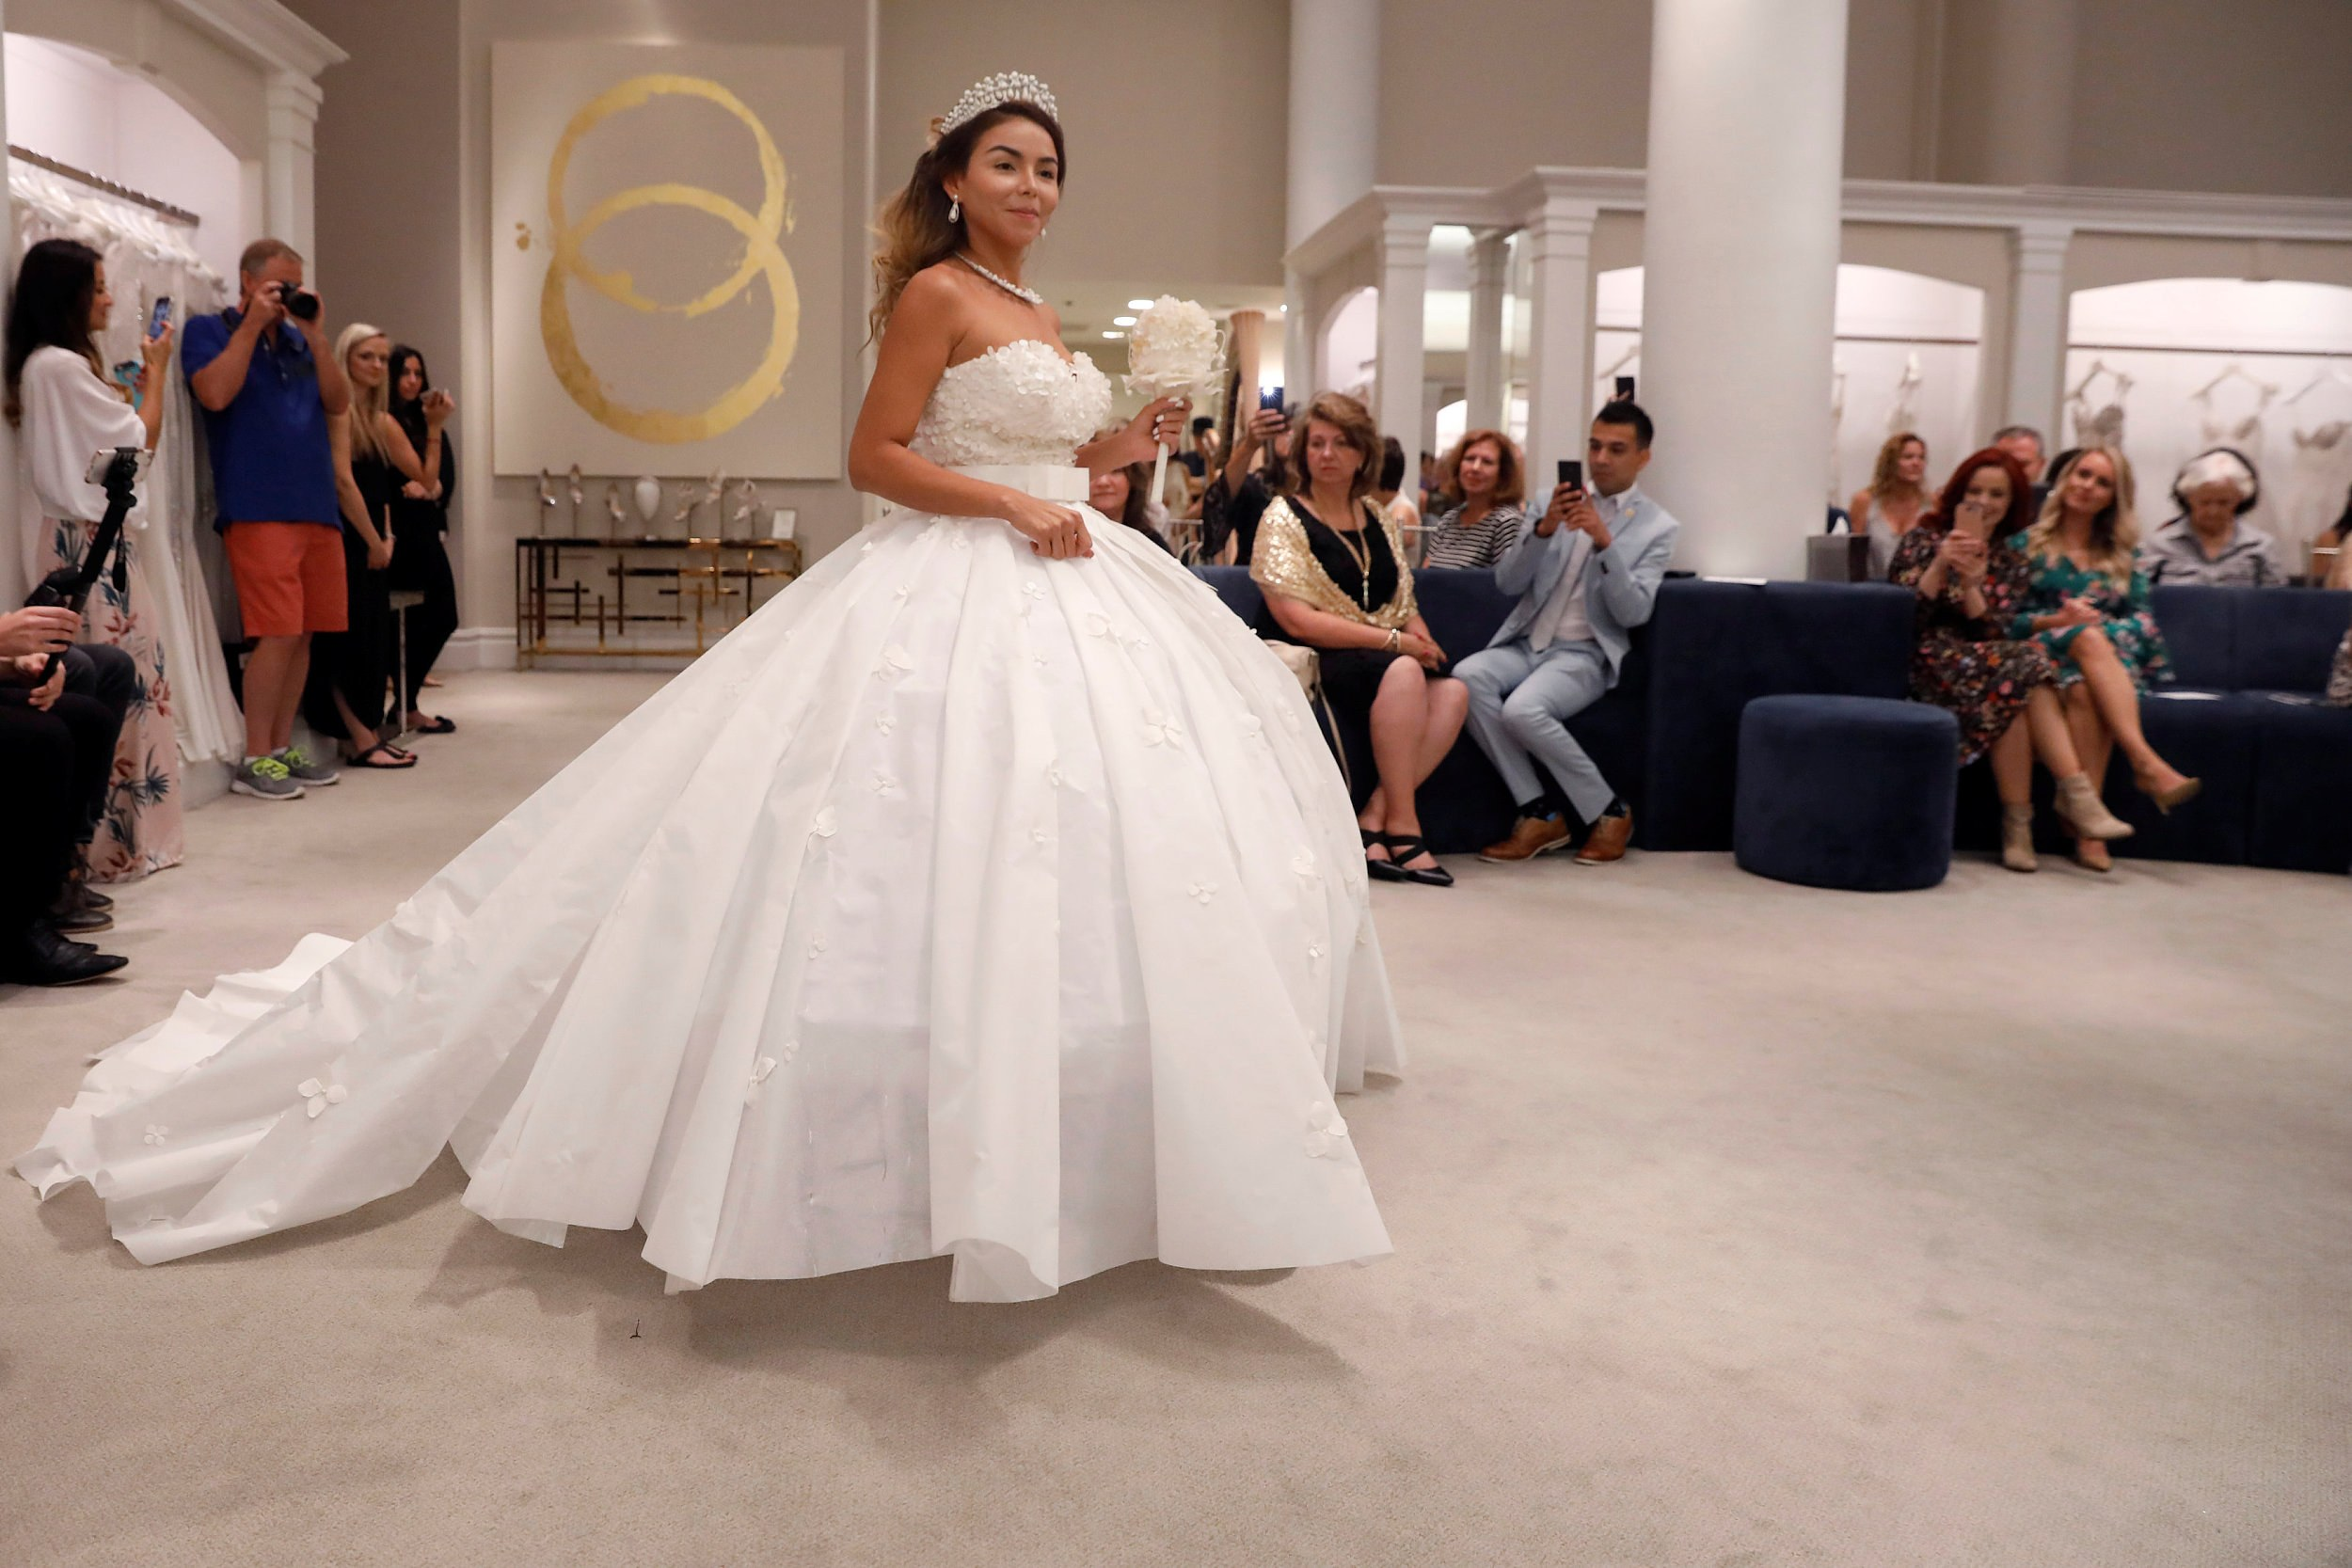 Designers roll out wedding dresses made of toilet paper in NY - CGTN